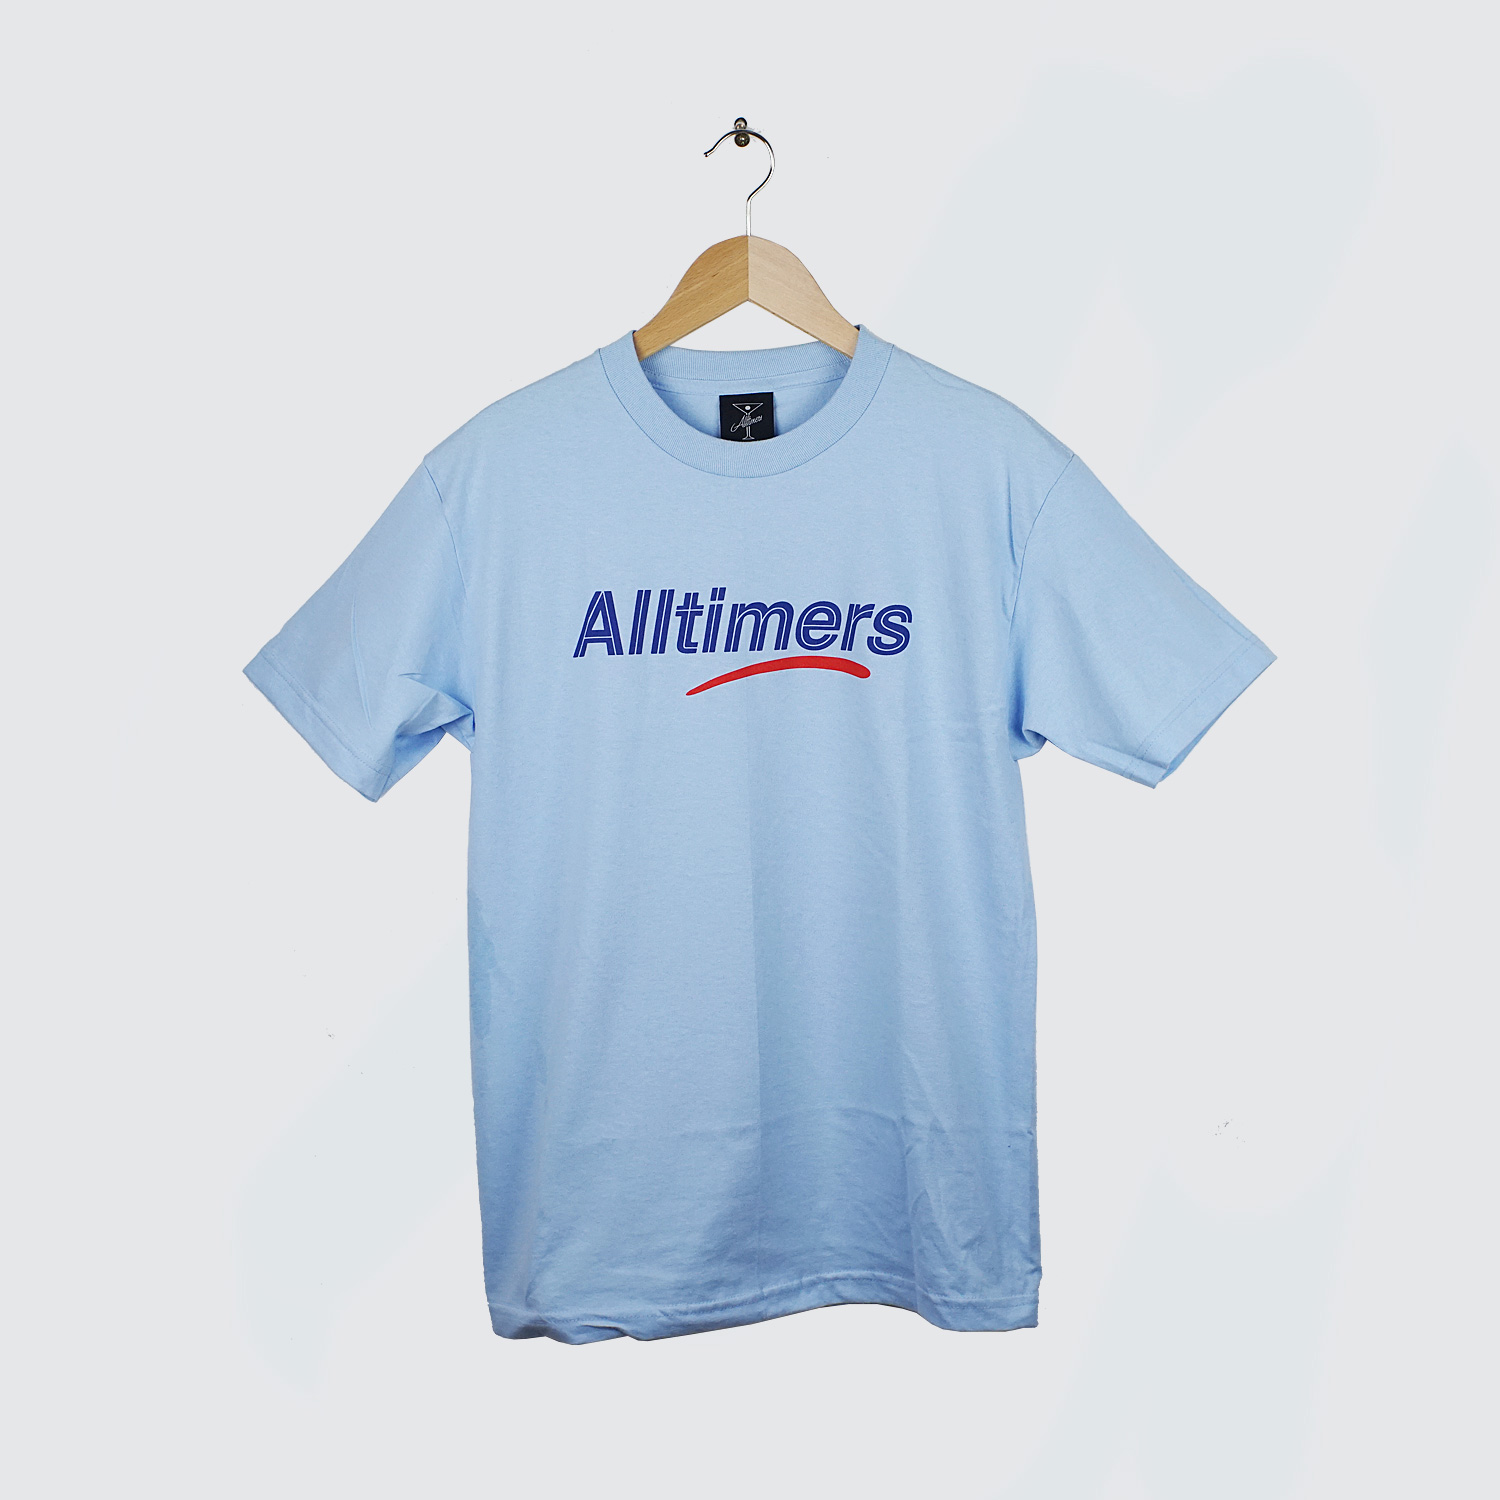 Alltimers sears tee blue lobby for Sears dress shirts sale